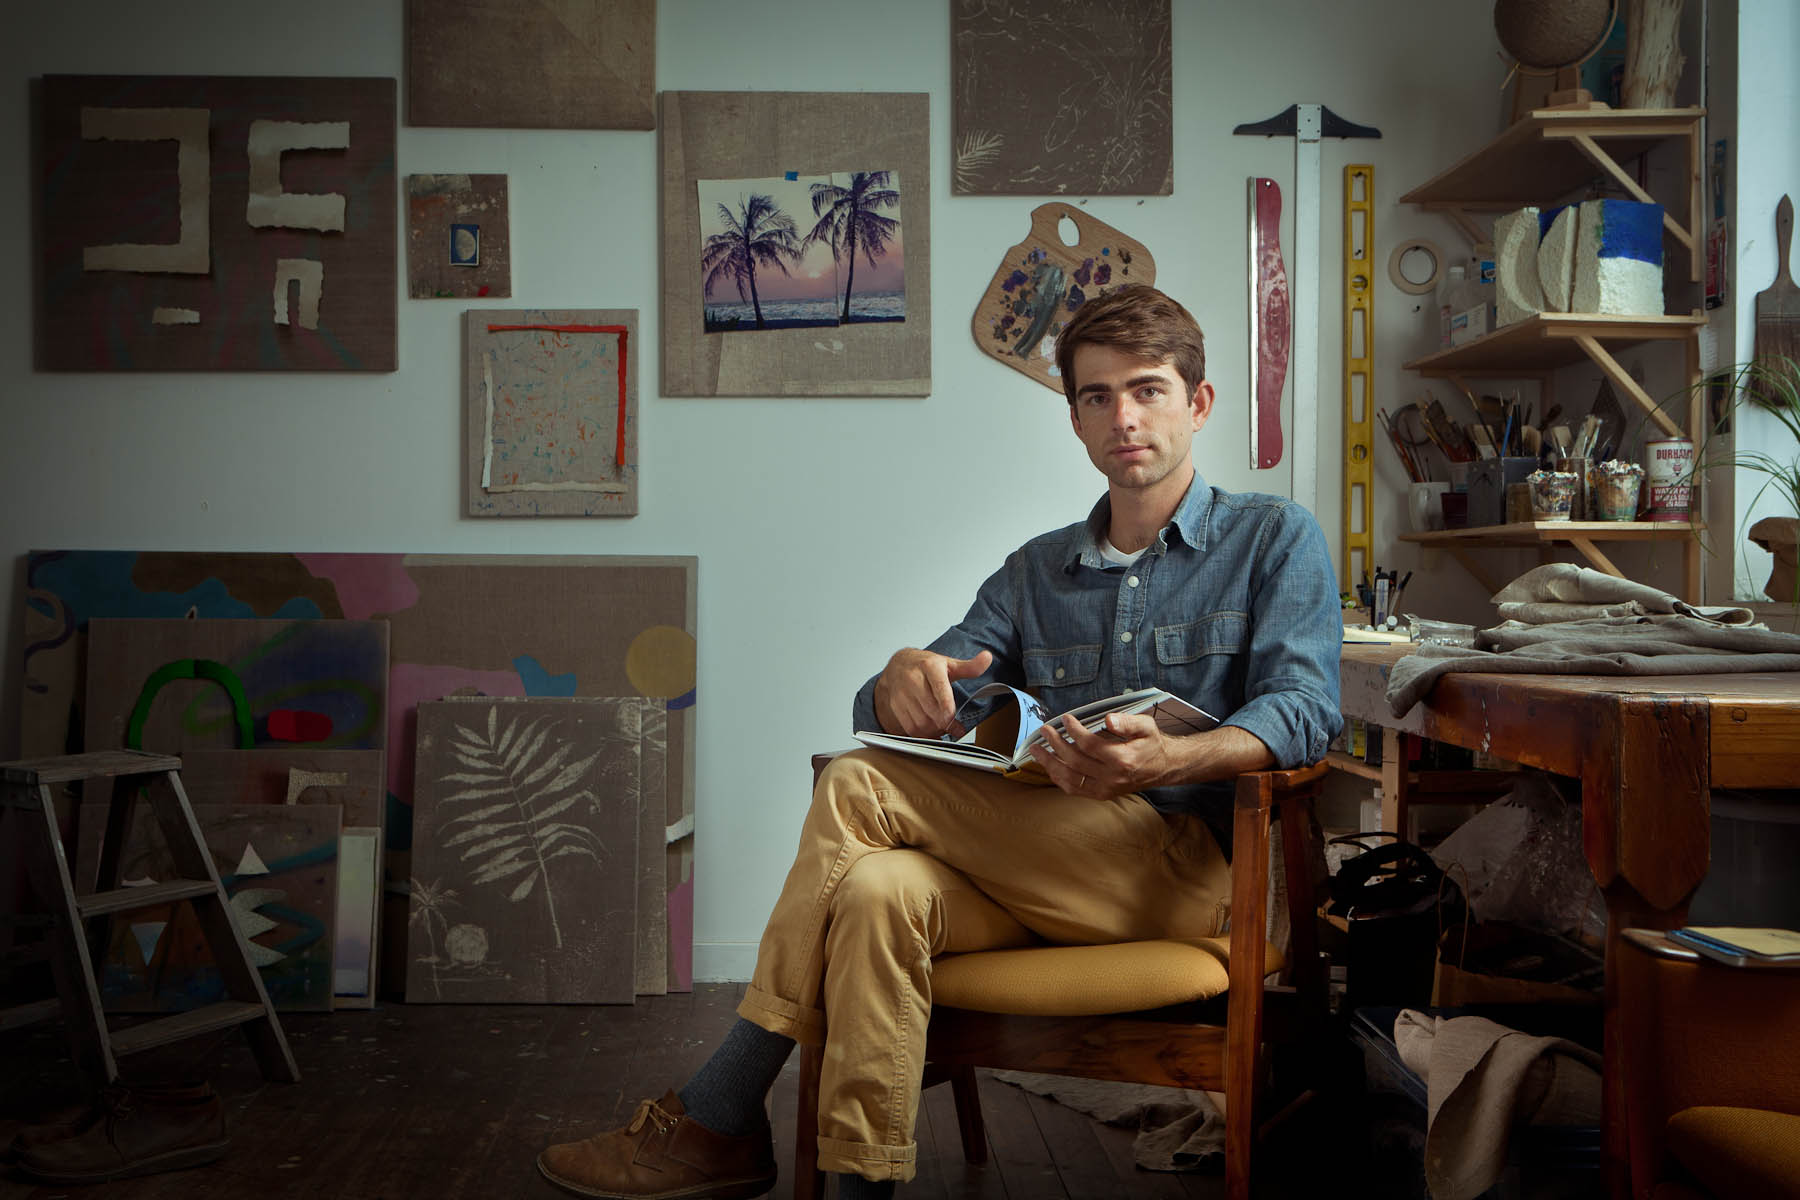 Bryson Gill: Painter/Photo Stylist in his SF Studio Above a Custom Pillow Factory in the Mission District